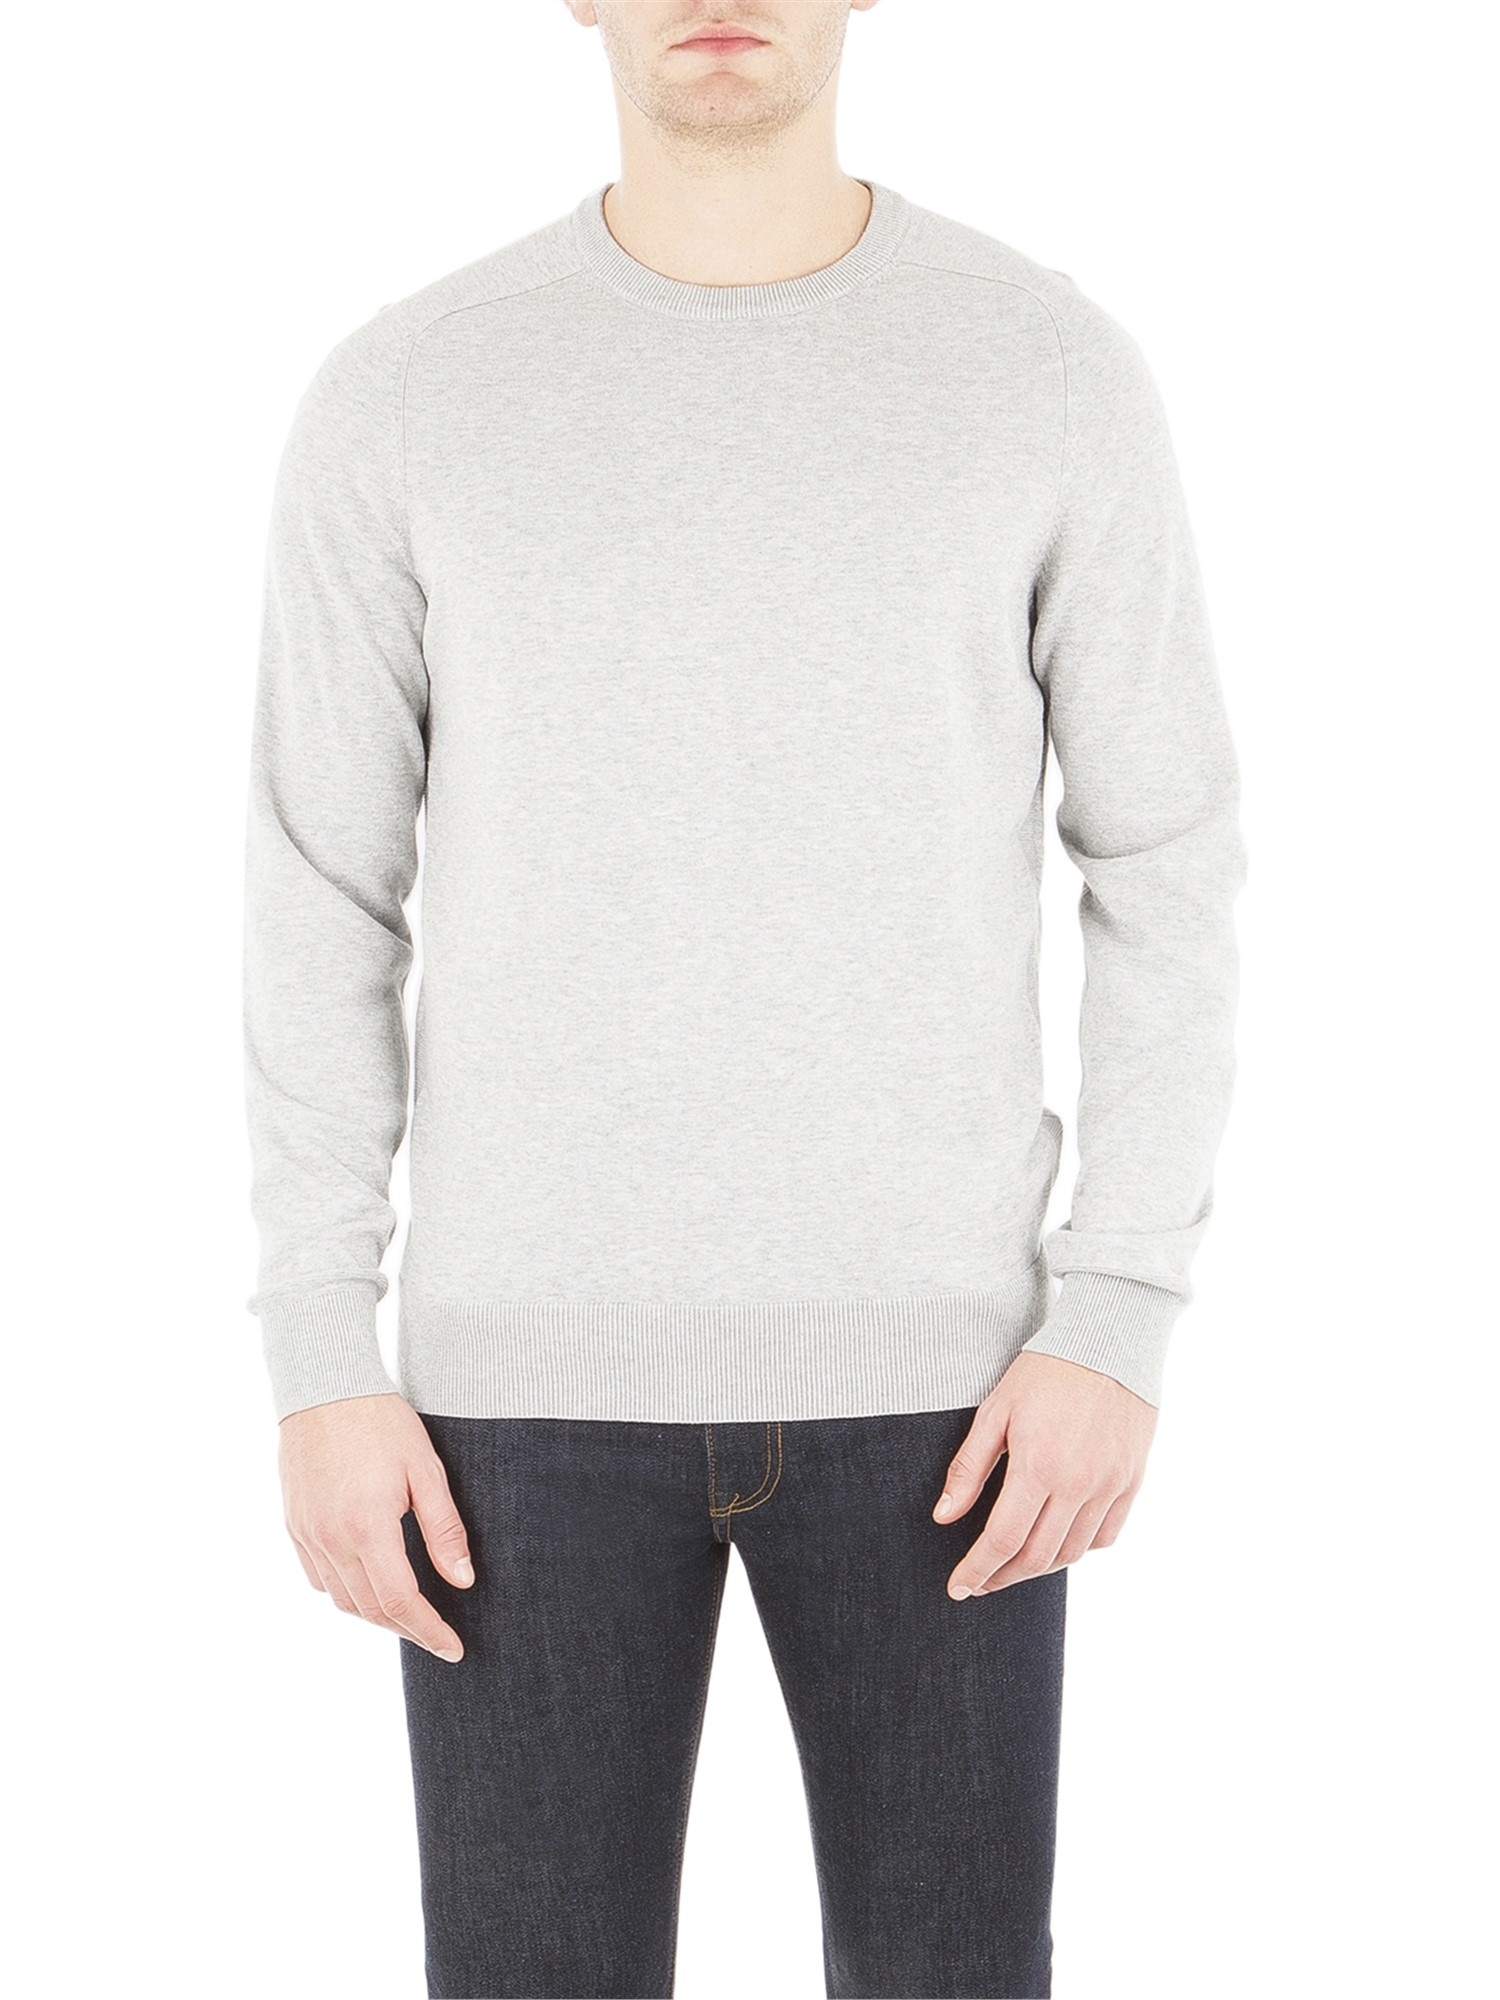 Ben Sherman Oxford Cotton Crew Neck